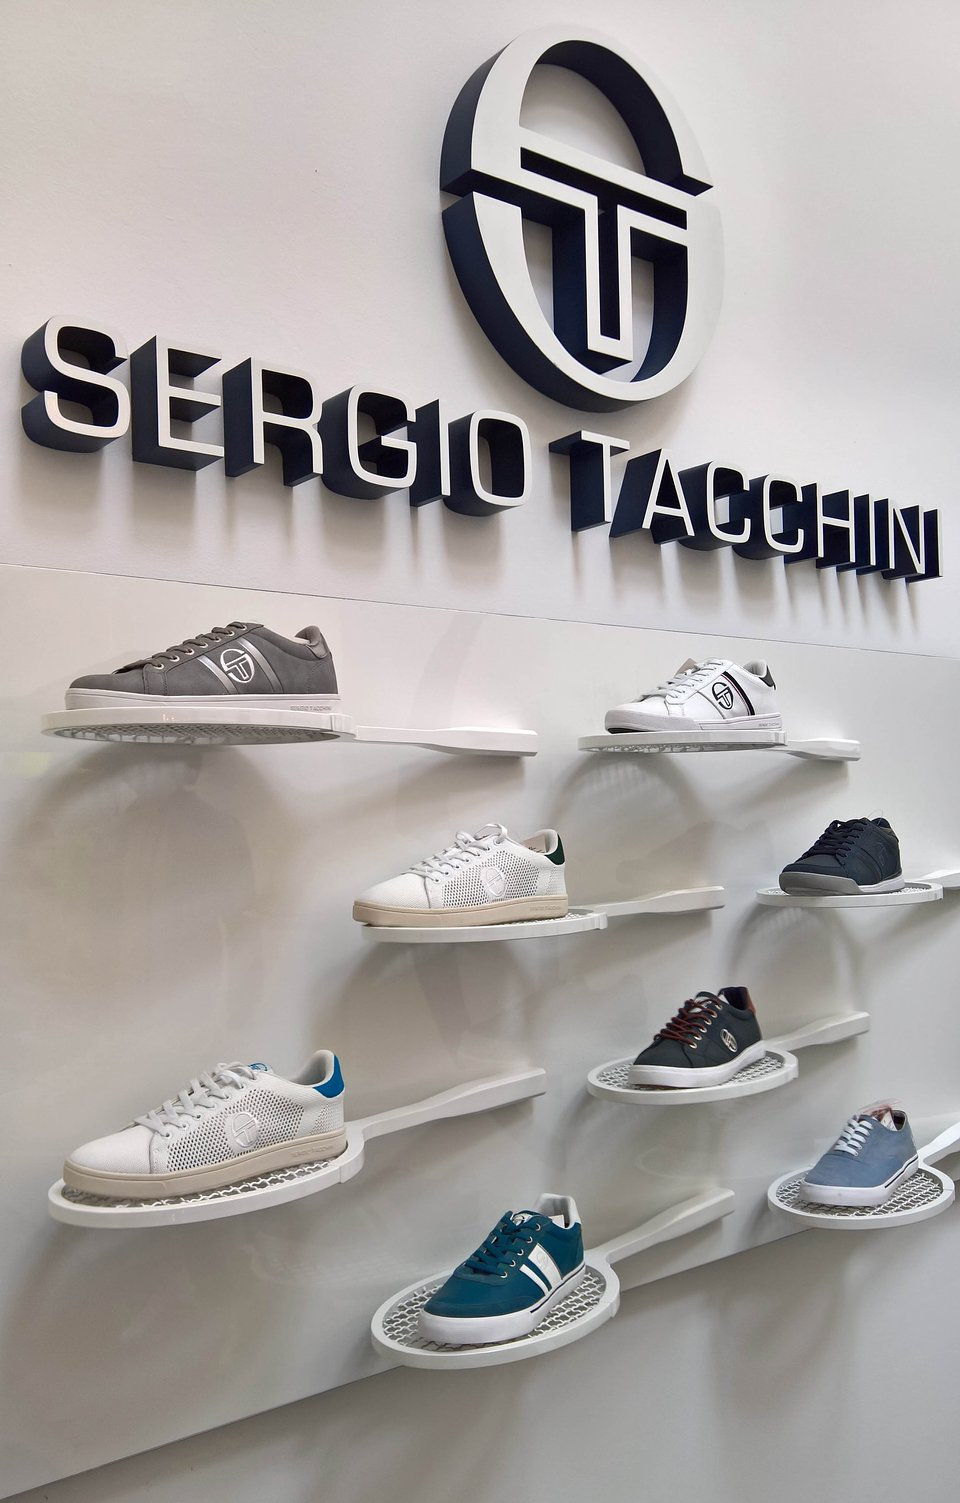 Sergio Tacchini show room by nz.A Studio (12).jpg